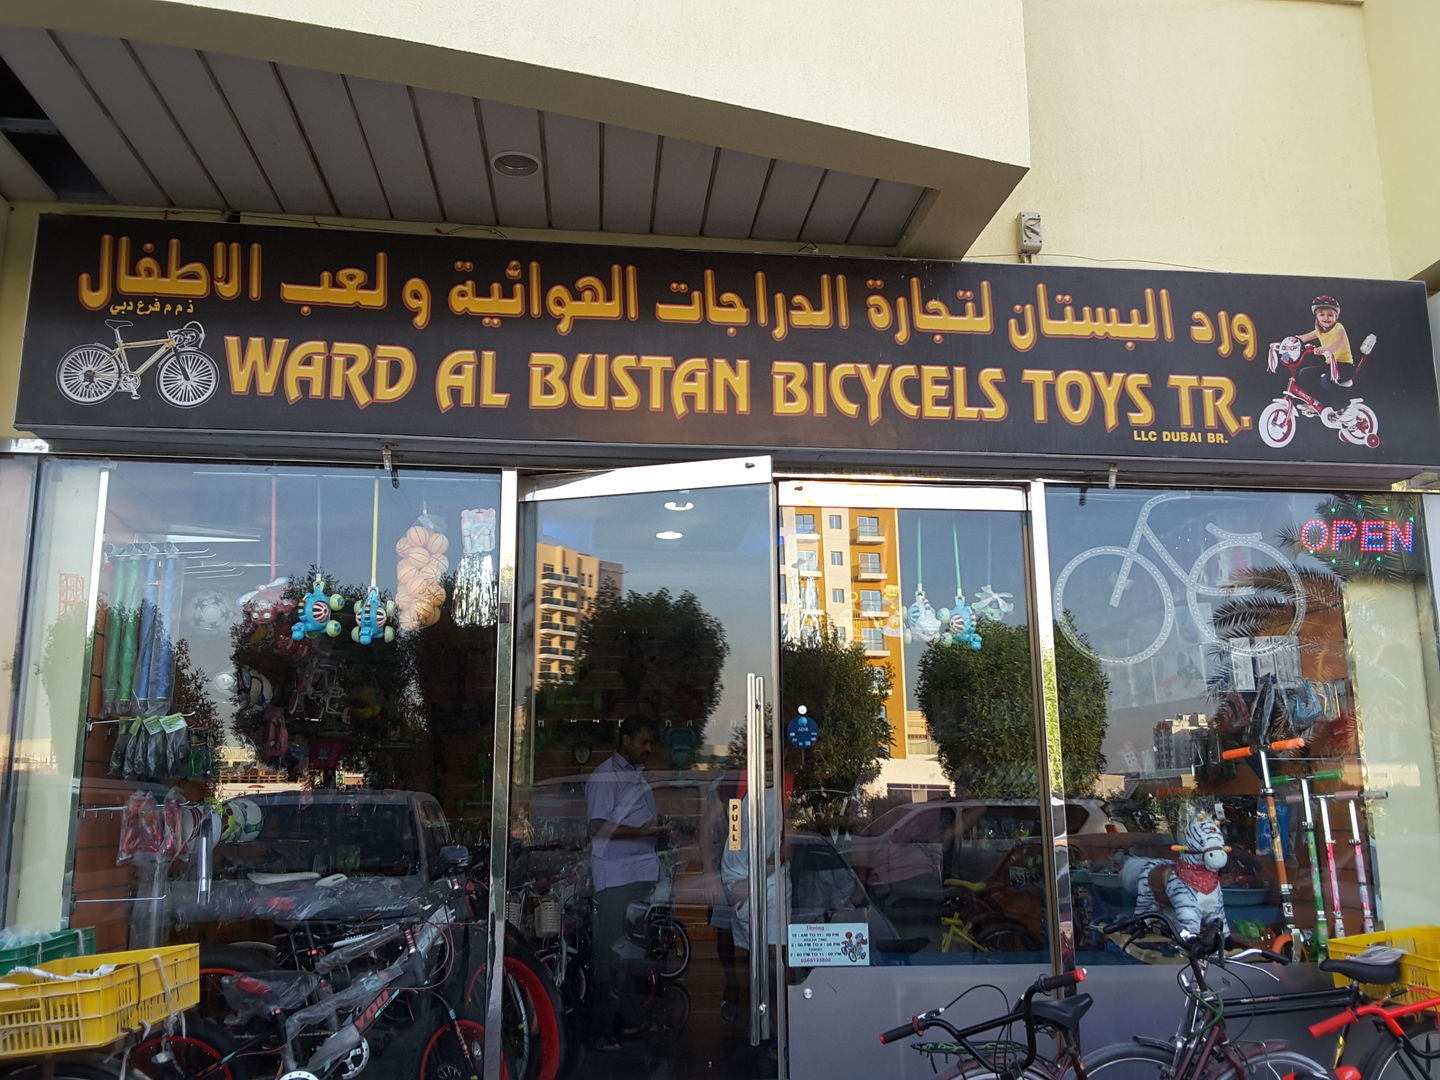 HiDubai-business-ward-al-bustan-bicycles-toys-trading-transport-vehicle-services-bicycles-dealers-muhaisnah-4-dubai-2